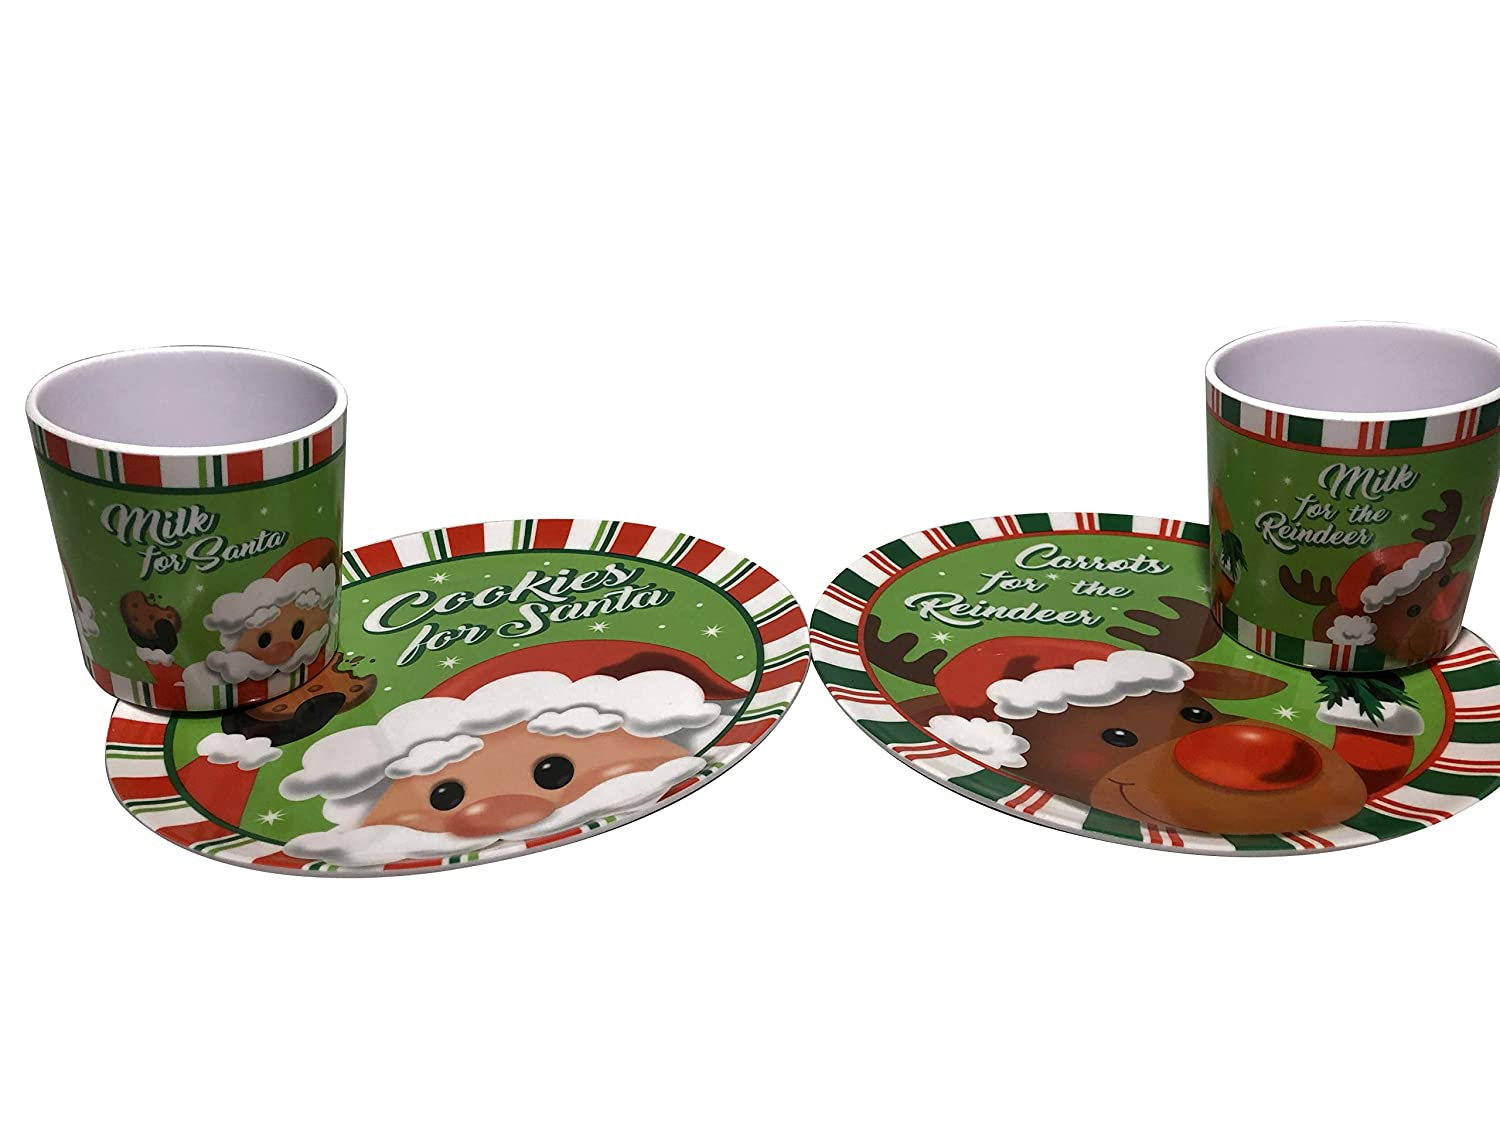 Set of 2 Plates and 2 Cups Cookie for Santa, Carrots for Reindeer. Milk for Santa and Reindeer